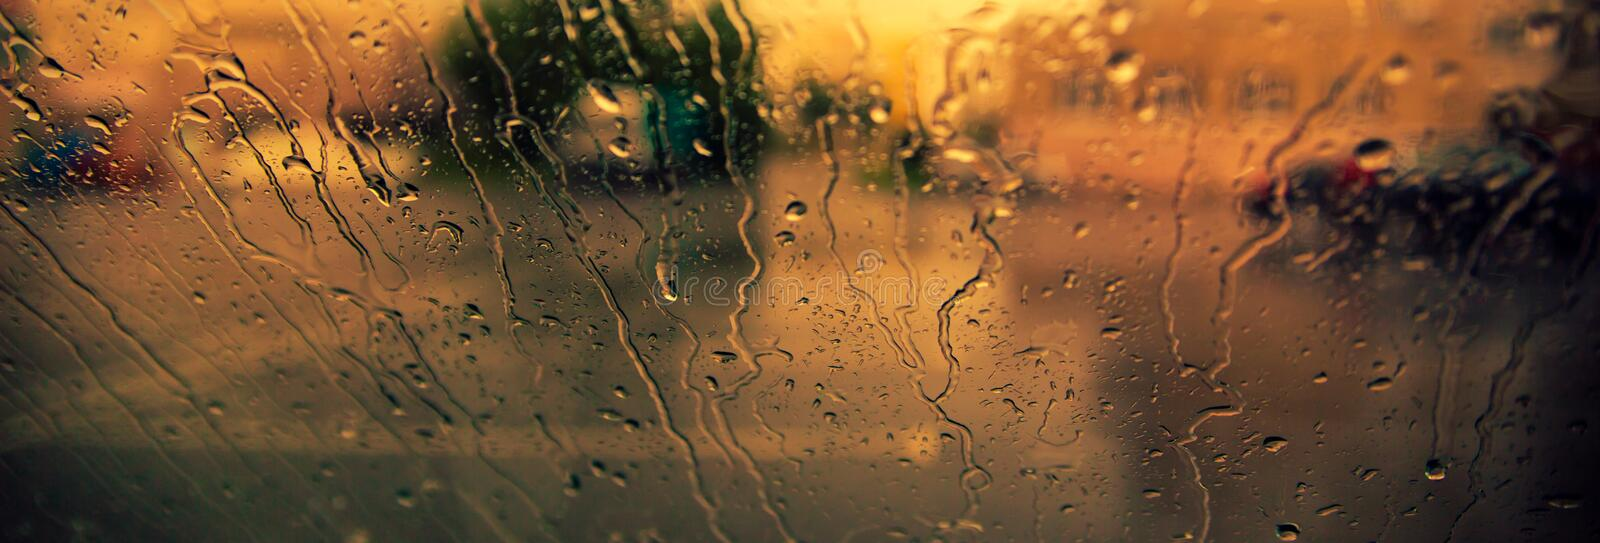 Flowing down drops of rain on car windshield. Fall concept.  royalty free stock photography